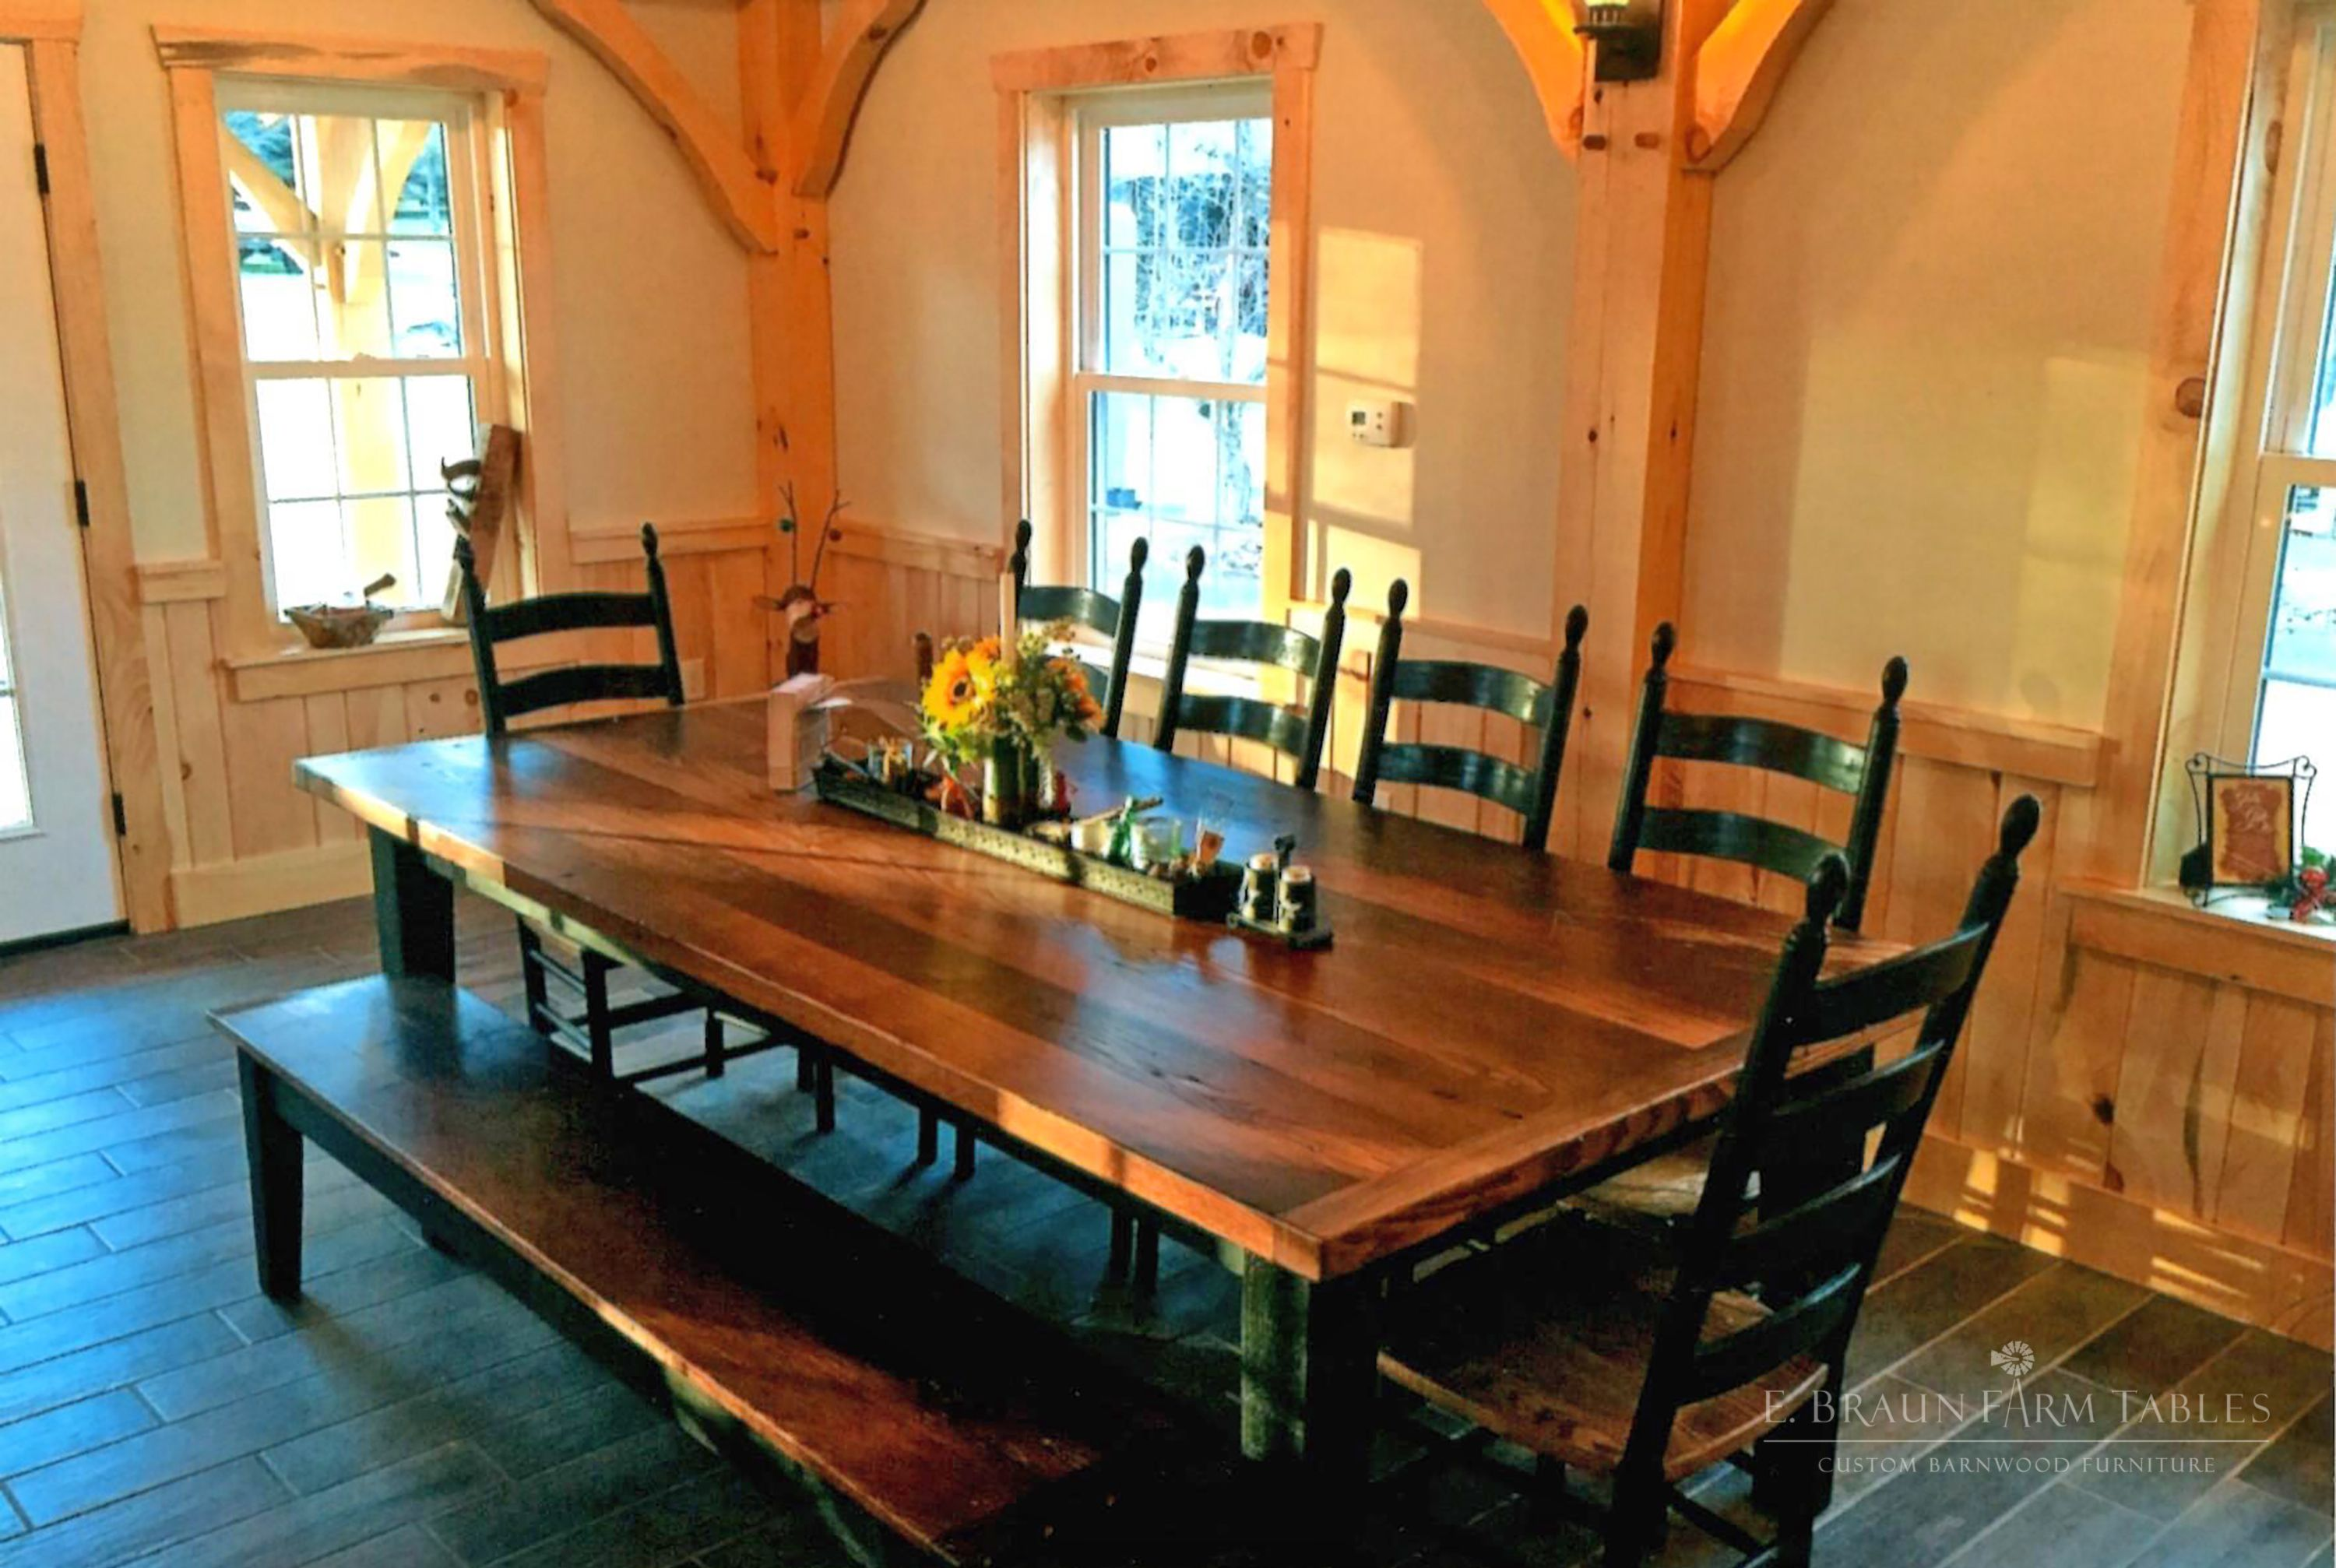 Consider This Large X Reclaimed Chestnut Top Table With A Painted Pine Base    All Handcrafted Using Reclaimed Barn Wood. Shaker Ladder Back Chairs, ...